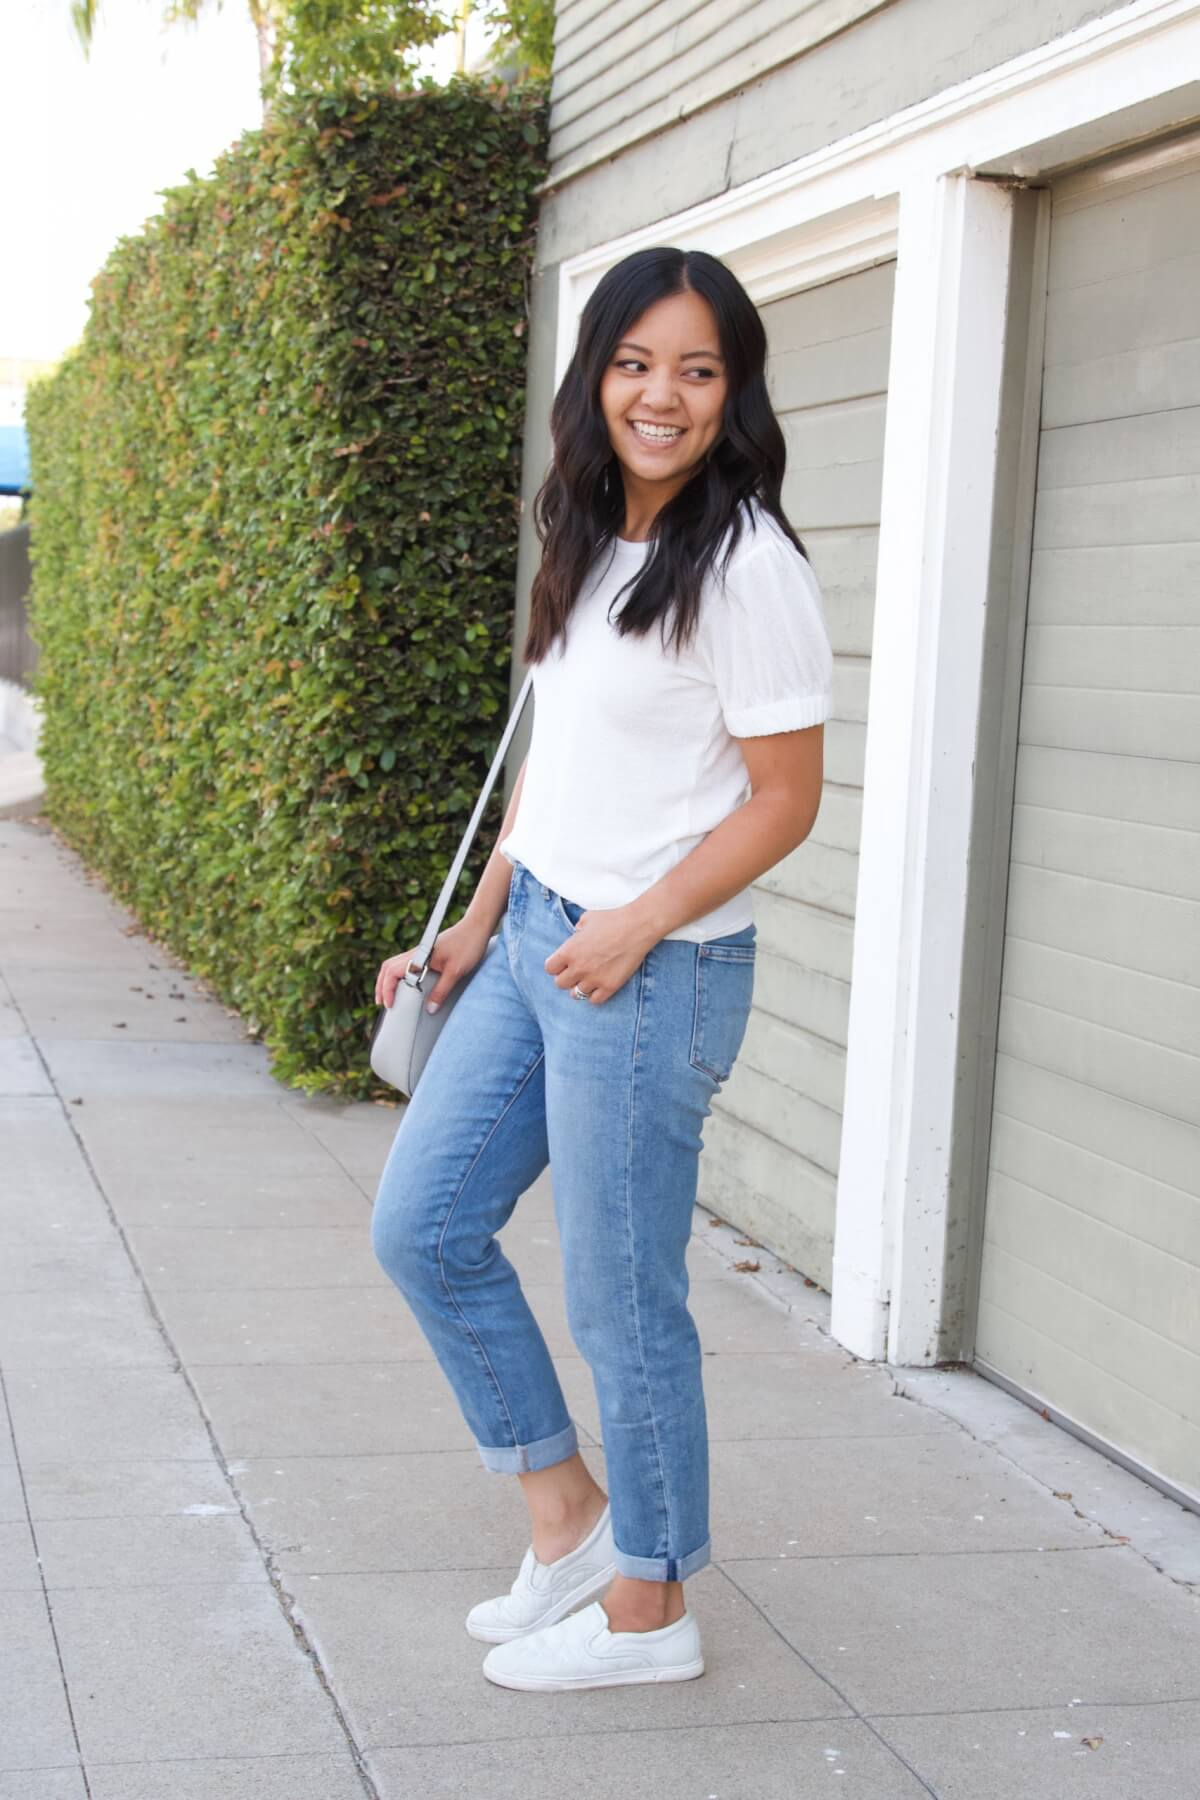 nicer casual outfit Summer to Early Fall Transition: white puff sleeve short sleeve top + light denim + white slip-on sneakers + gray crossbody purse side